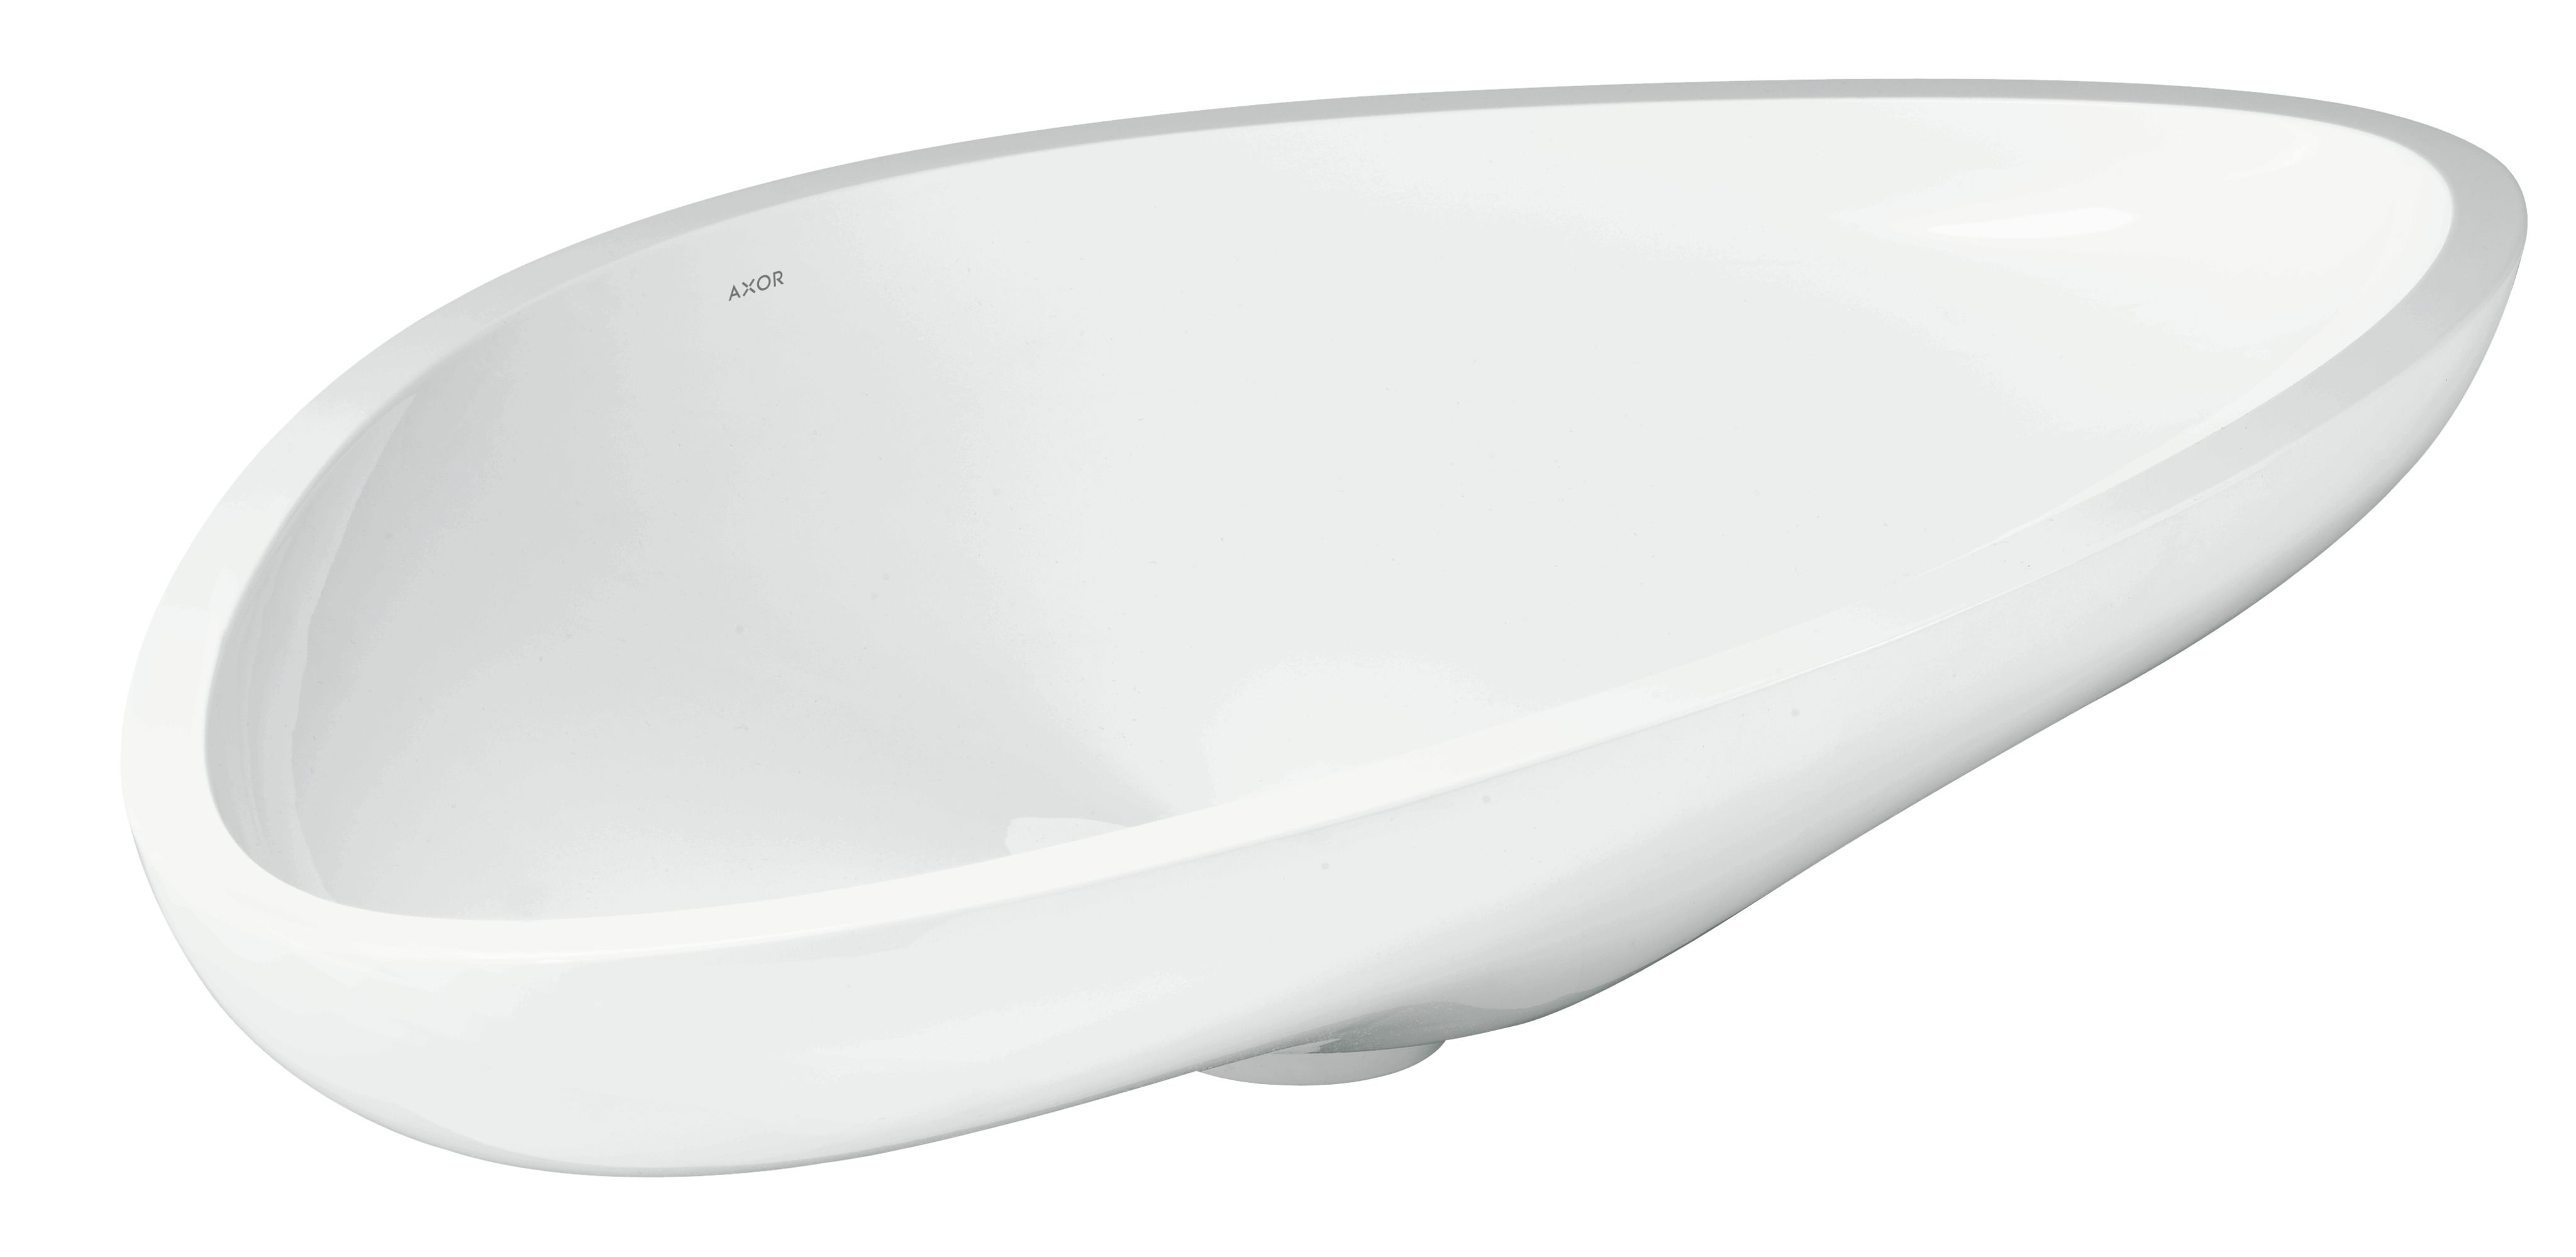 Grand Lavabo Axor Lavabo Axor Massaud Vasque De Lavabo Grand Format 800 X 450